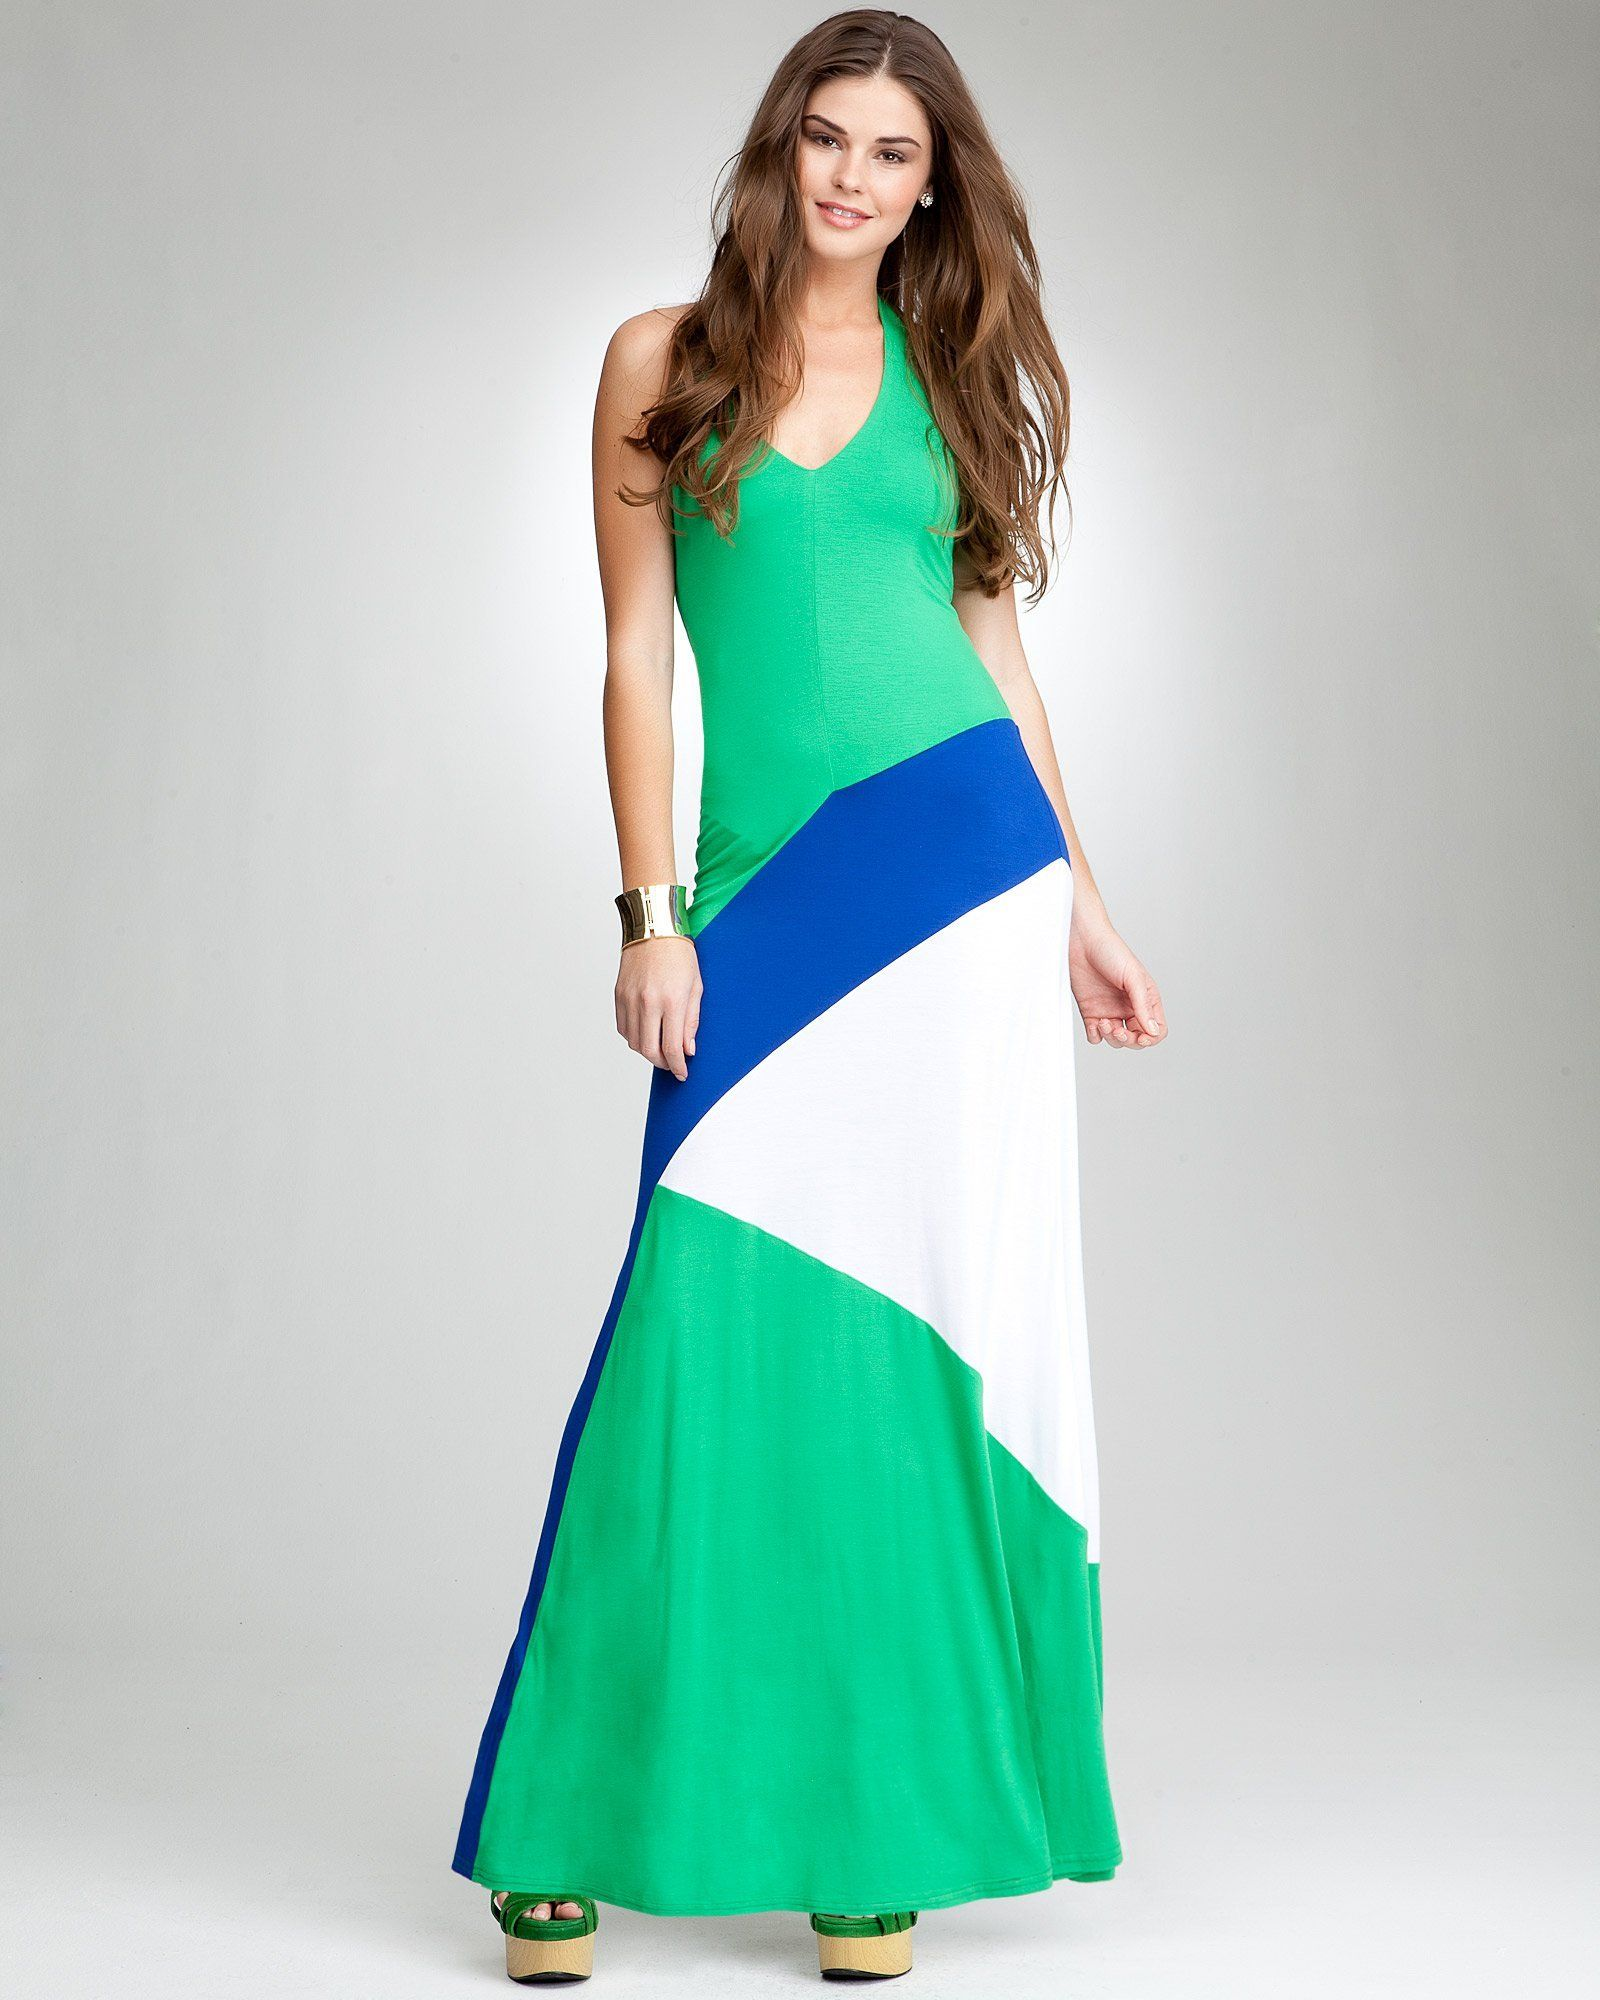 1. a cute casual look for your flight bebe Colorblock Halter Maxi Dress #bebe #wishesanddreams